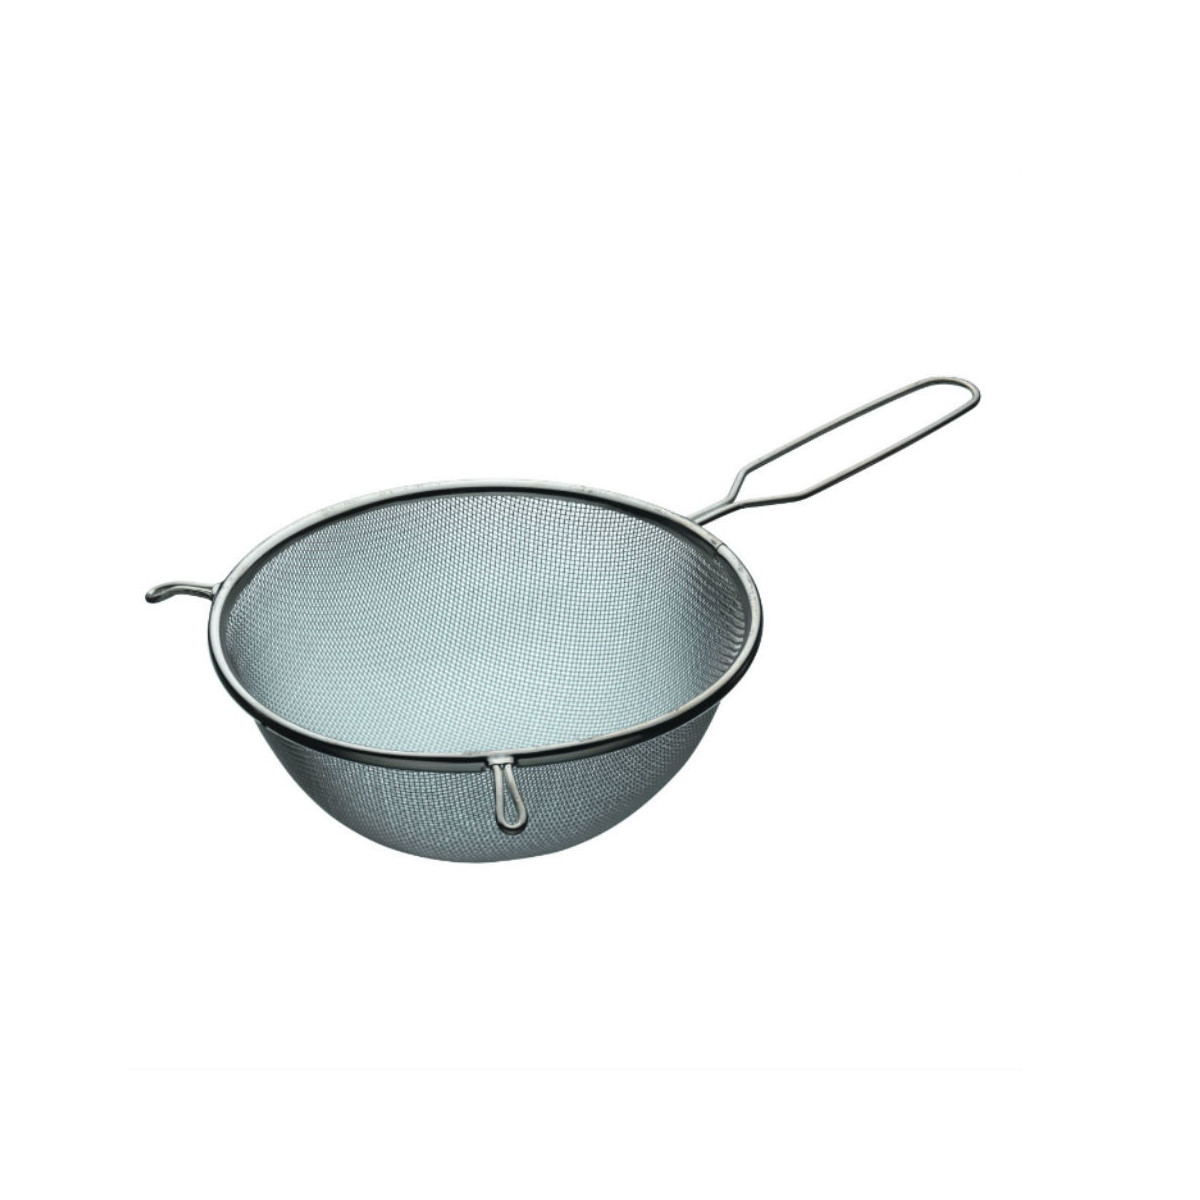 Kitchen Craft 20cm Round Sieve